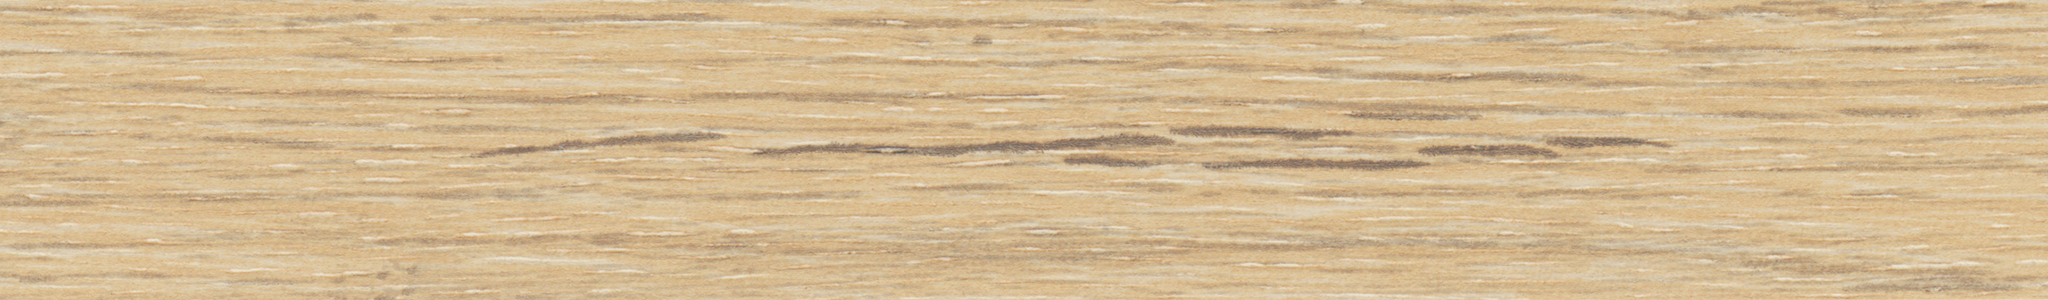 HD 24086 Chant ABS Hickory Naturel Graine